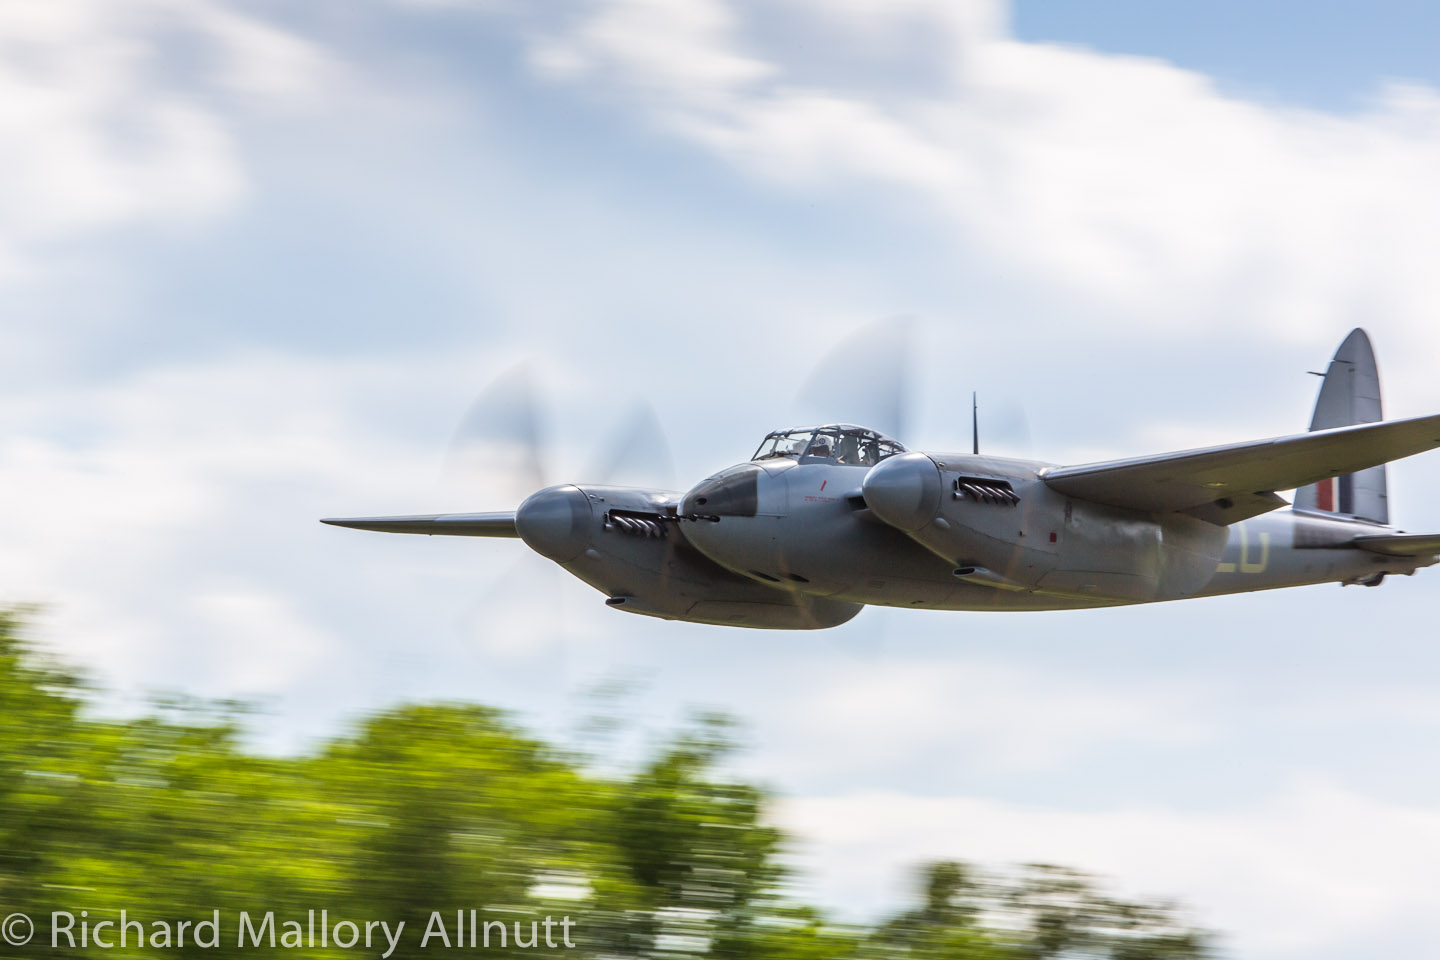 The deHavilland Mosquito during a particularly spirited pass of the airfield during the Friday practice flight in 2014. (photo by Richard Mallory Allnutt)